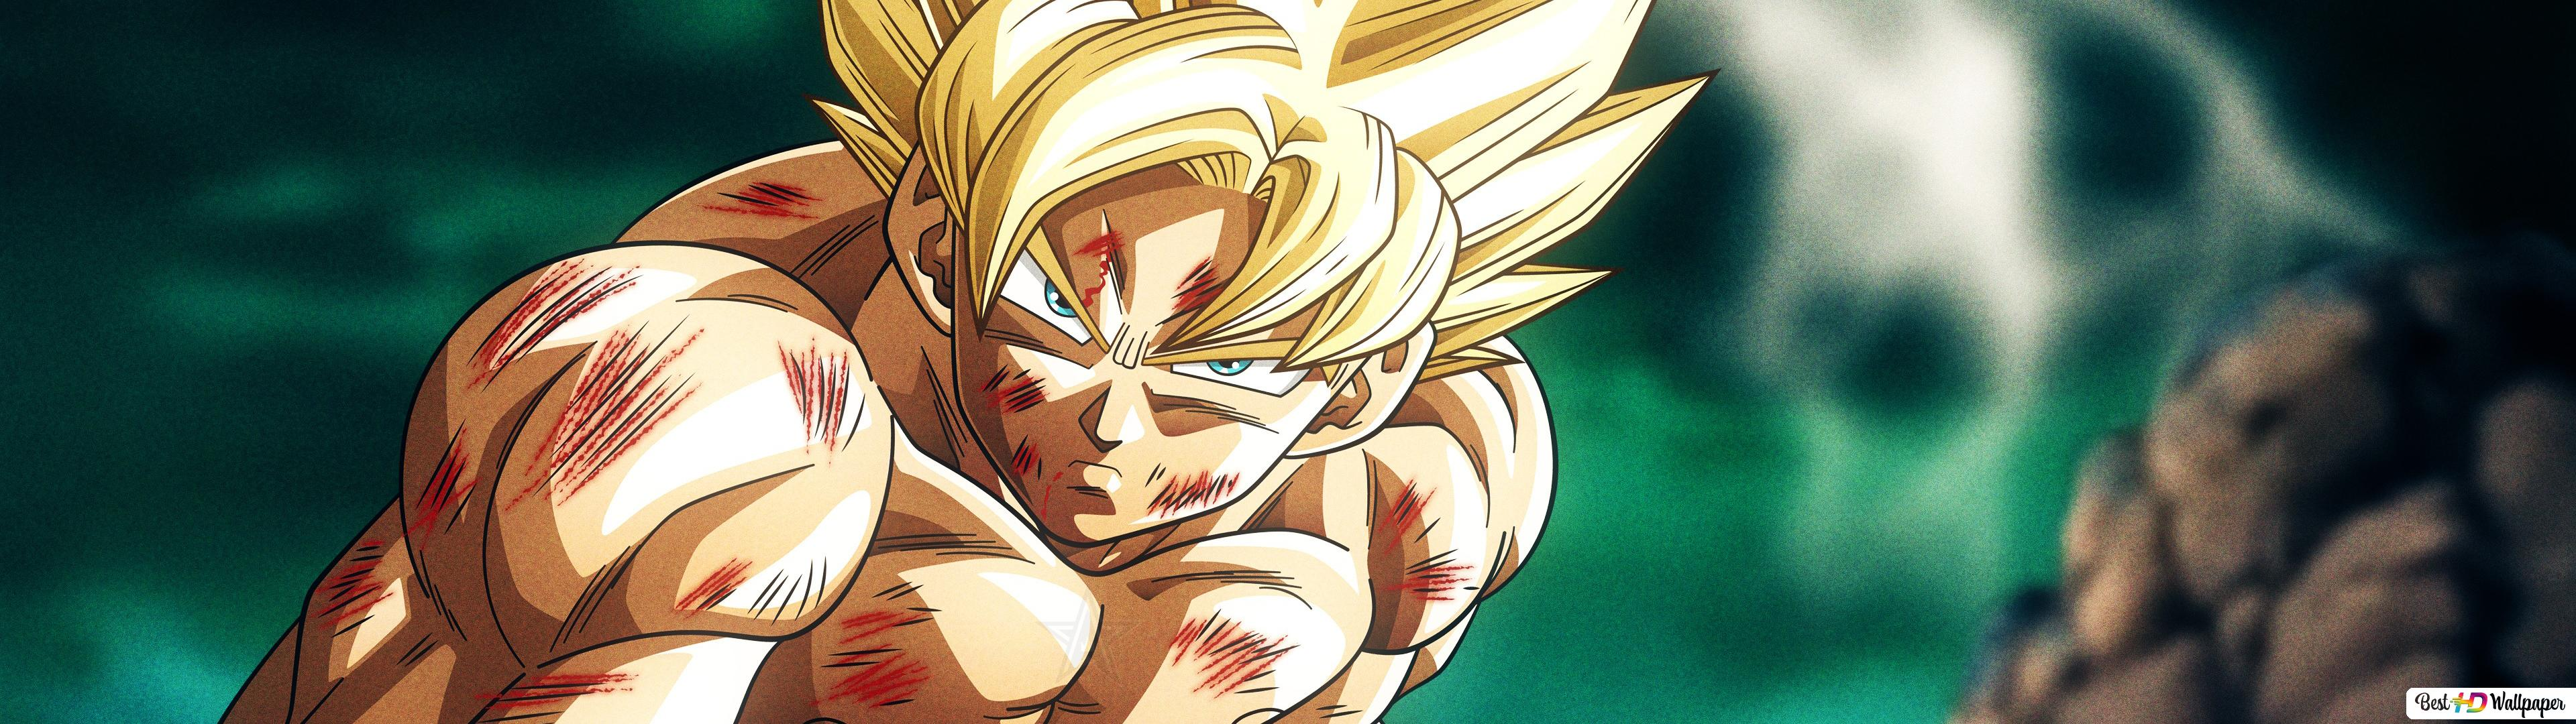 Descargar Fondo De Pantalla Dragon Ball Super 4k Goku Hd